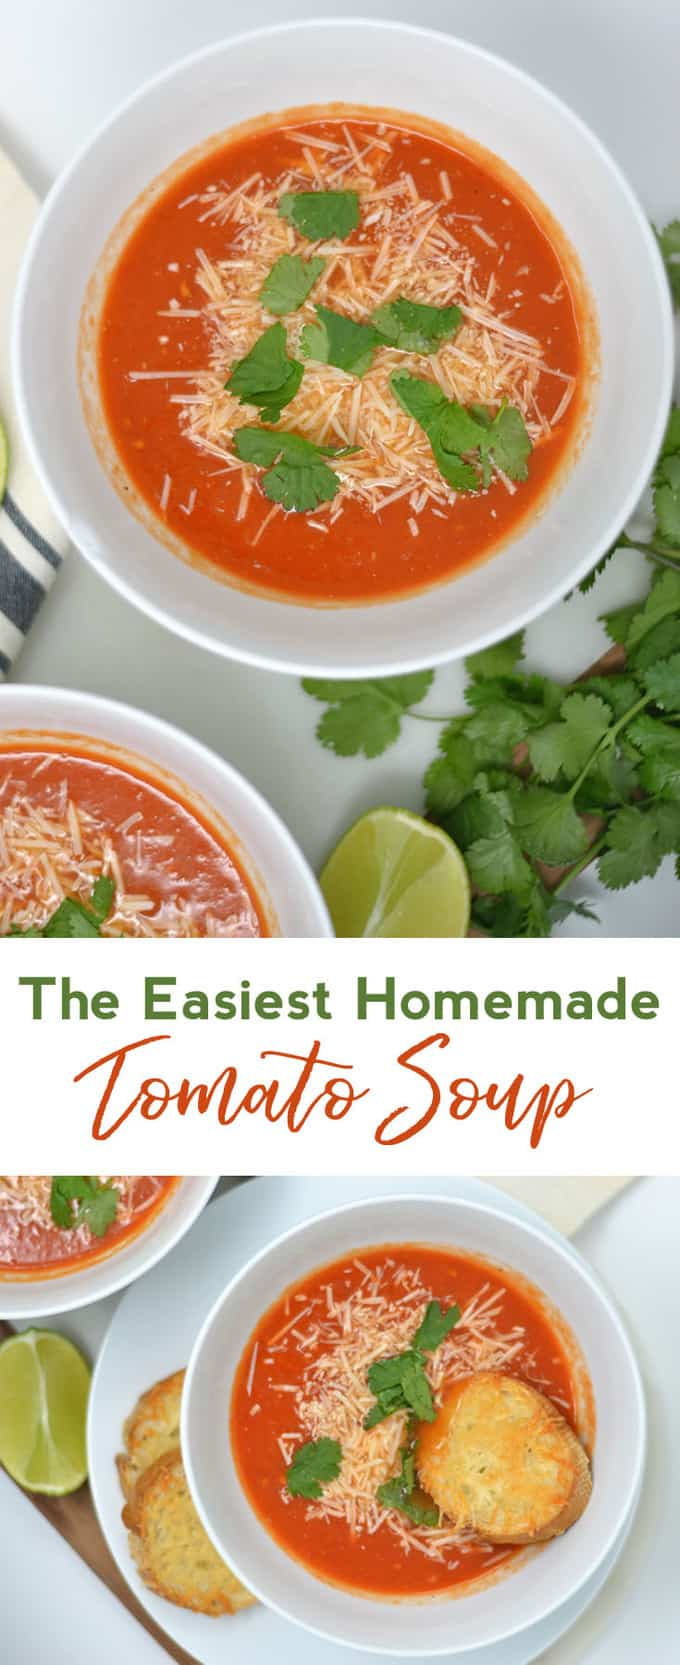 An easy homemade tomato soup recipe perfect for fall and winter. Homemade tomato soup is delicious and healthy. This is a favorite dinner recipe for our family!